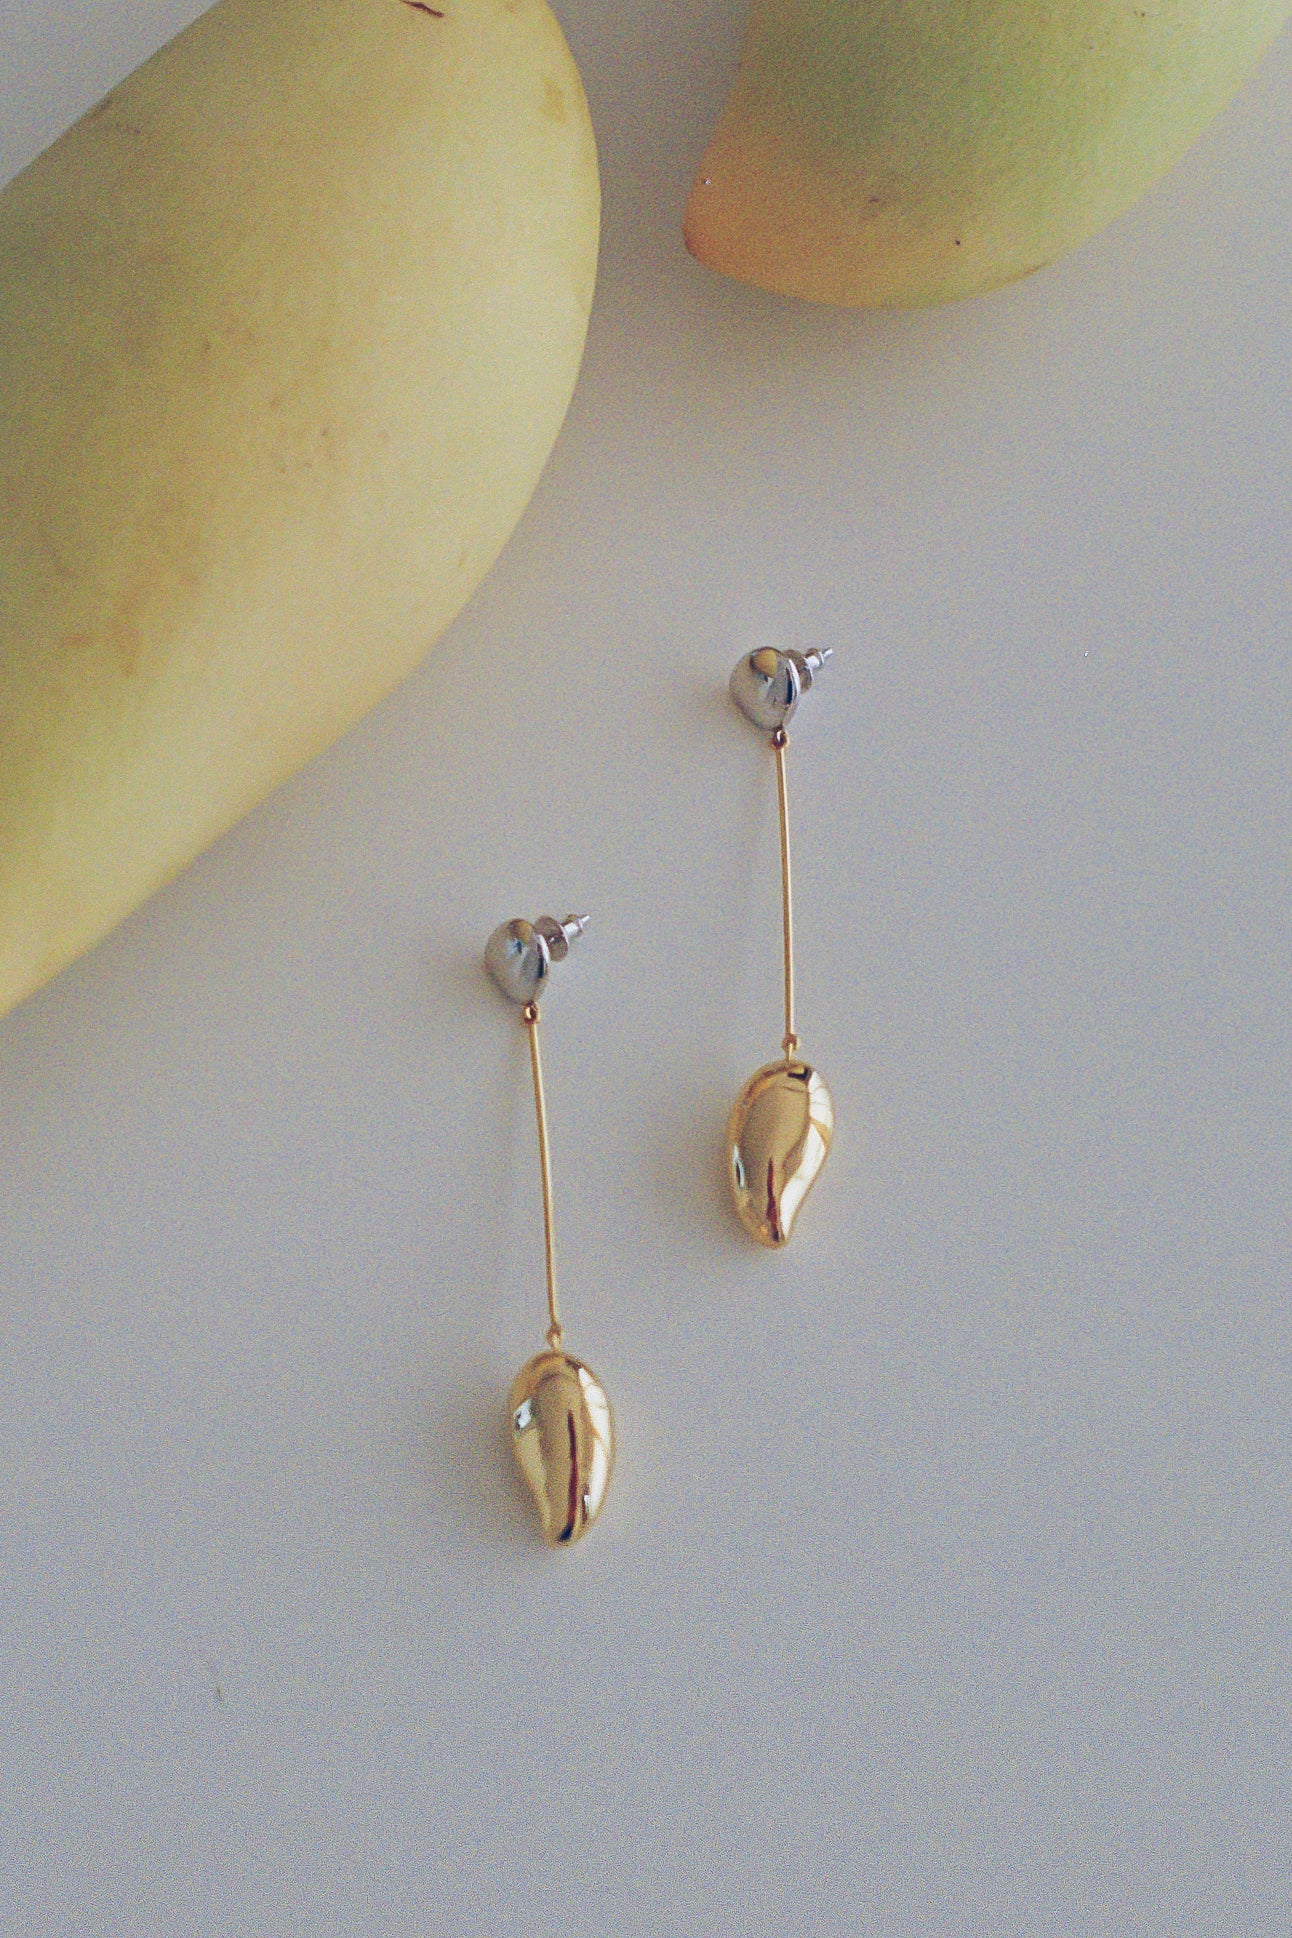 LA MANGUE D'OR EARRINGS